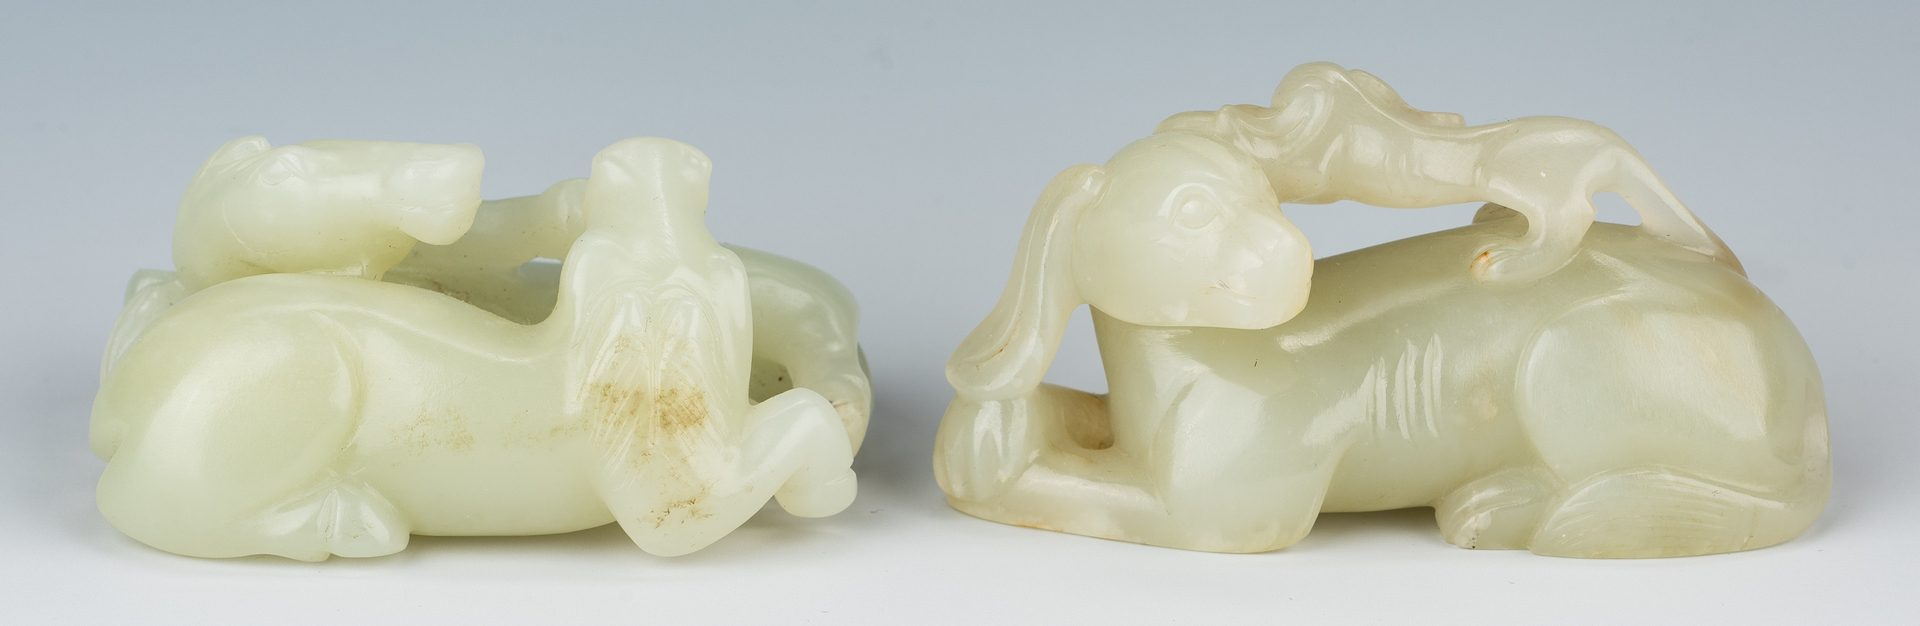 Lot 469: 8 Chinese Carved Jade Items, incl. Animals